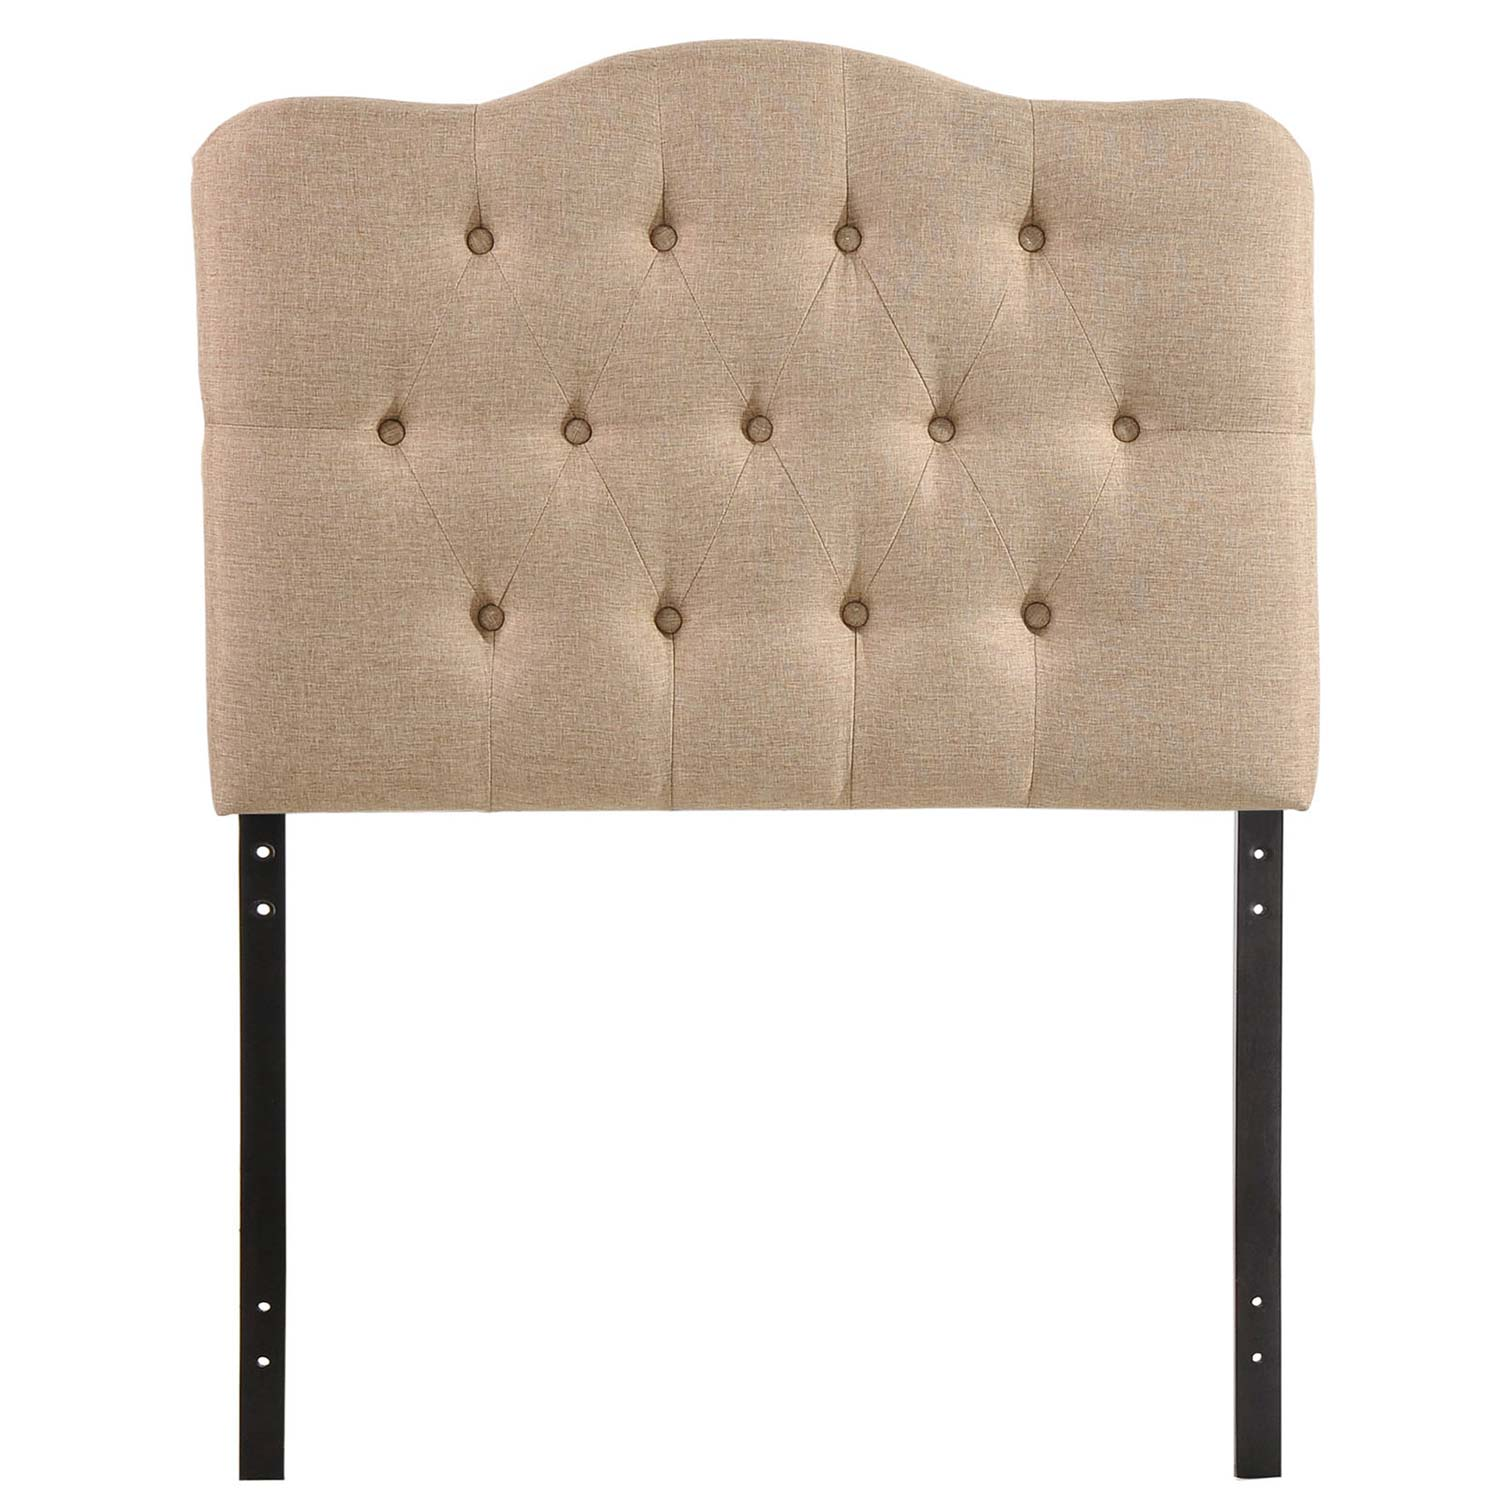 Modway Annabel Fabric Headboard - Beige